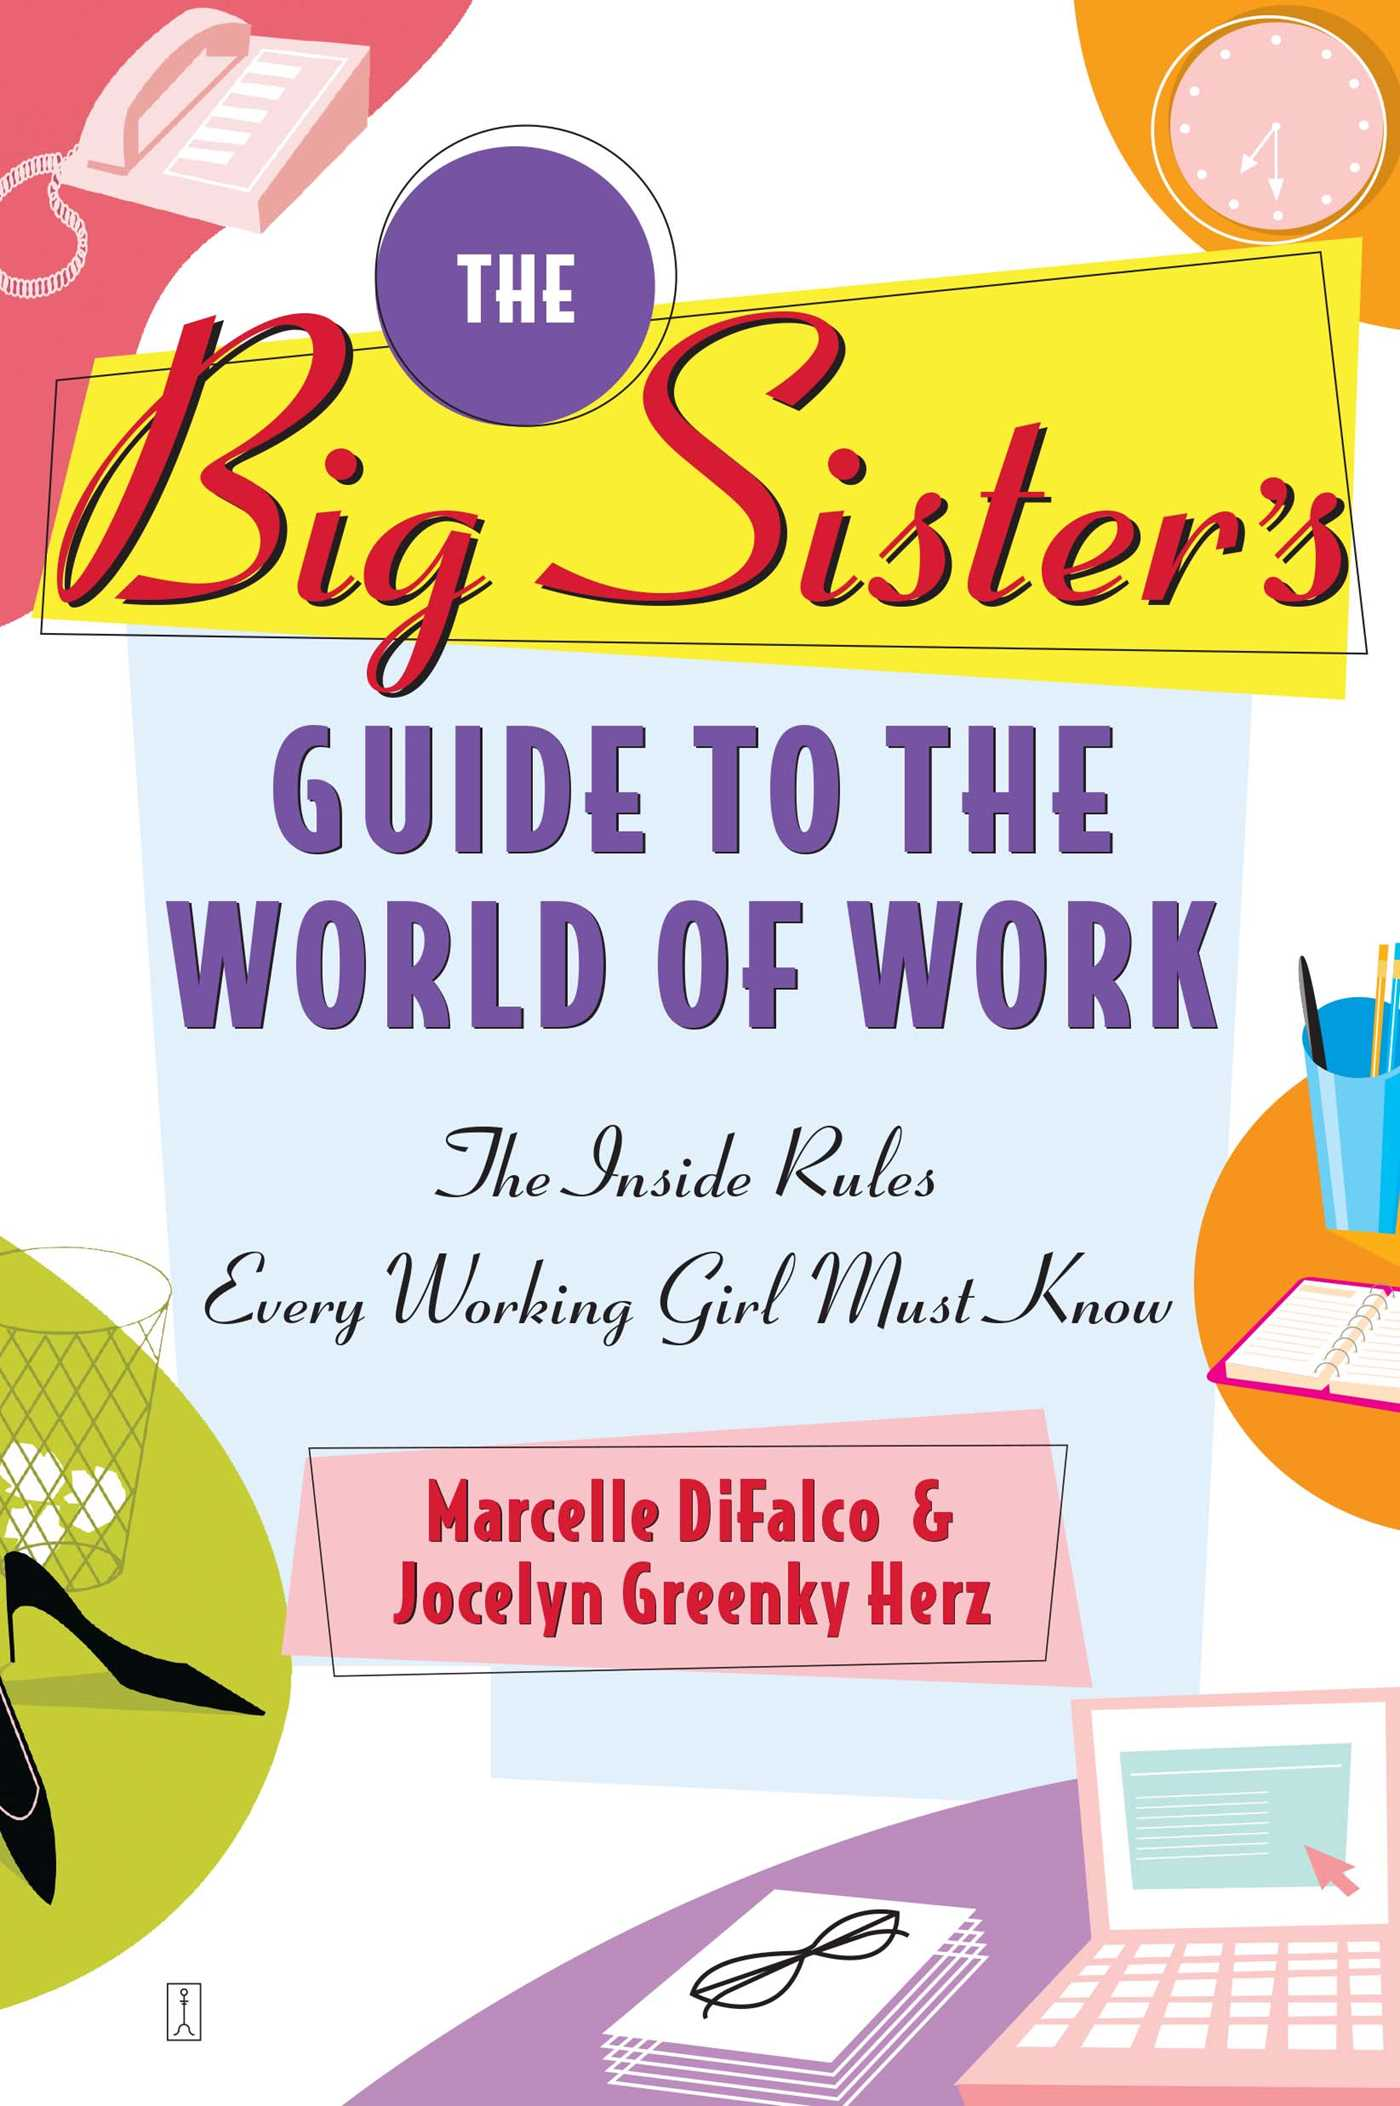 The big sisters guide to the world of work 9781439103852 hr